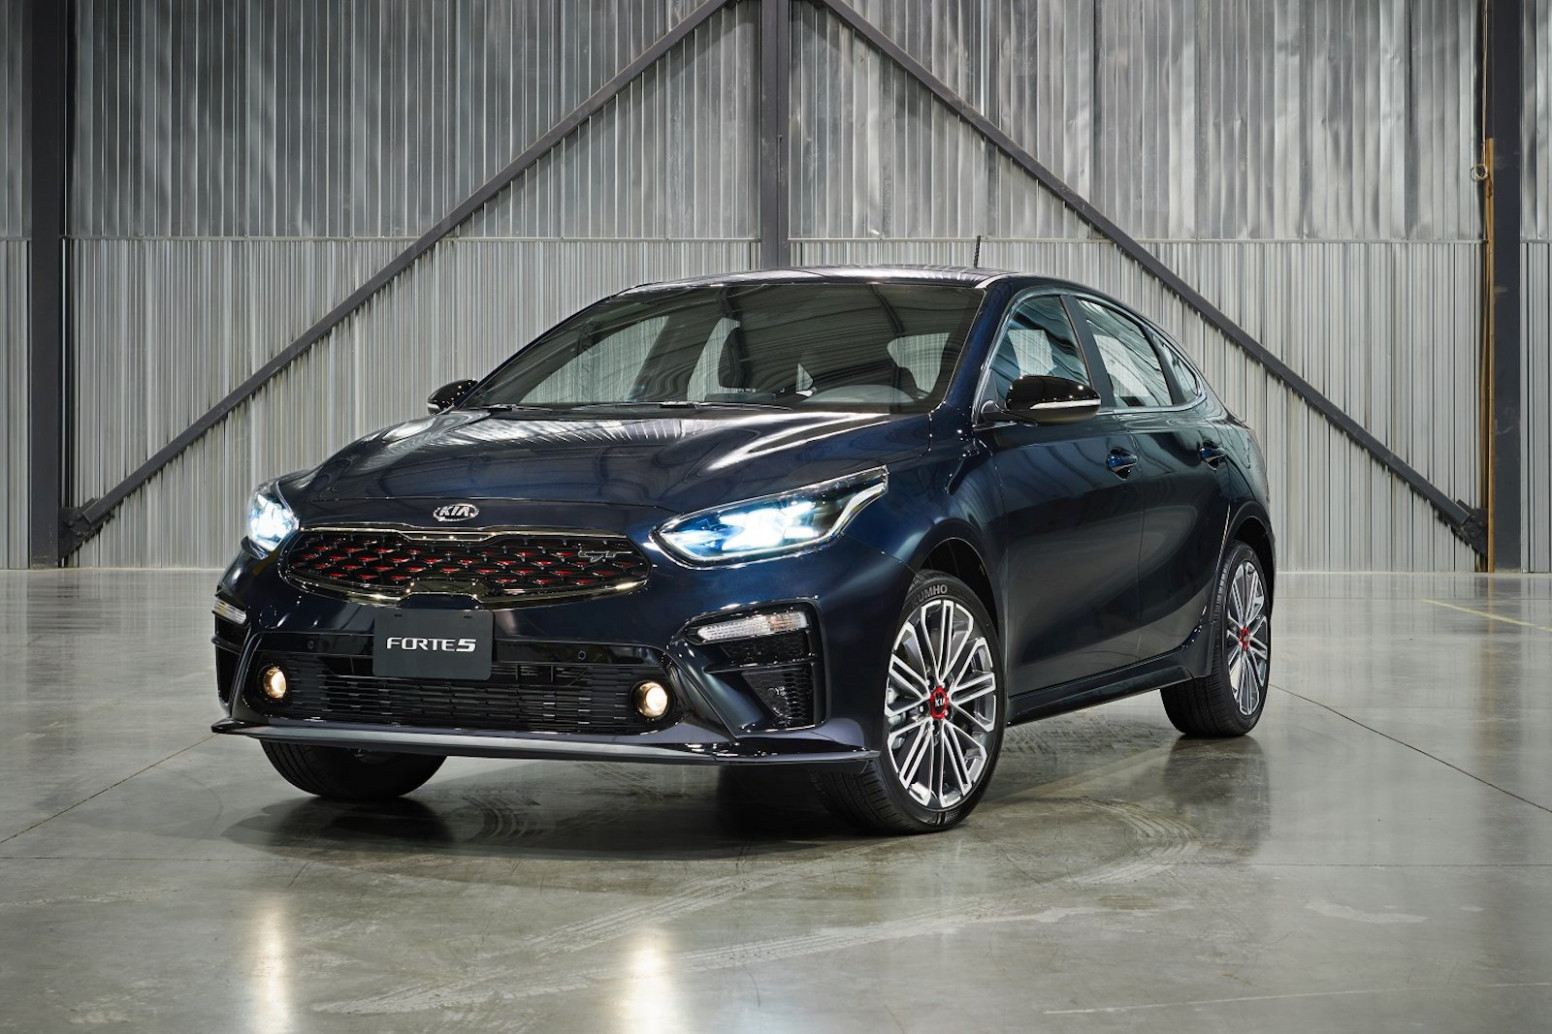 11 Kia Forte11 Debuts as a Handsome Hatchback » AutoGuide